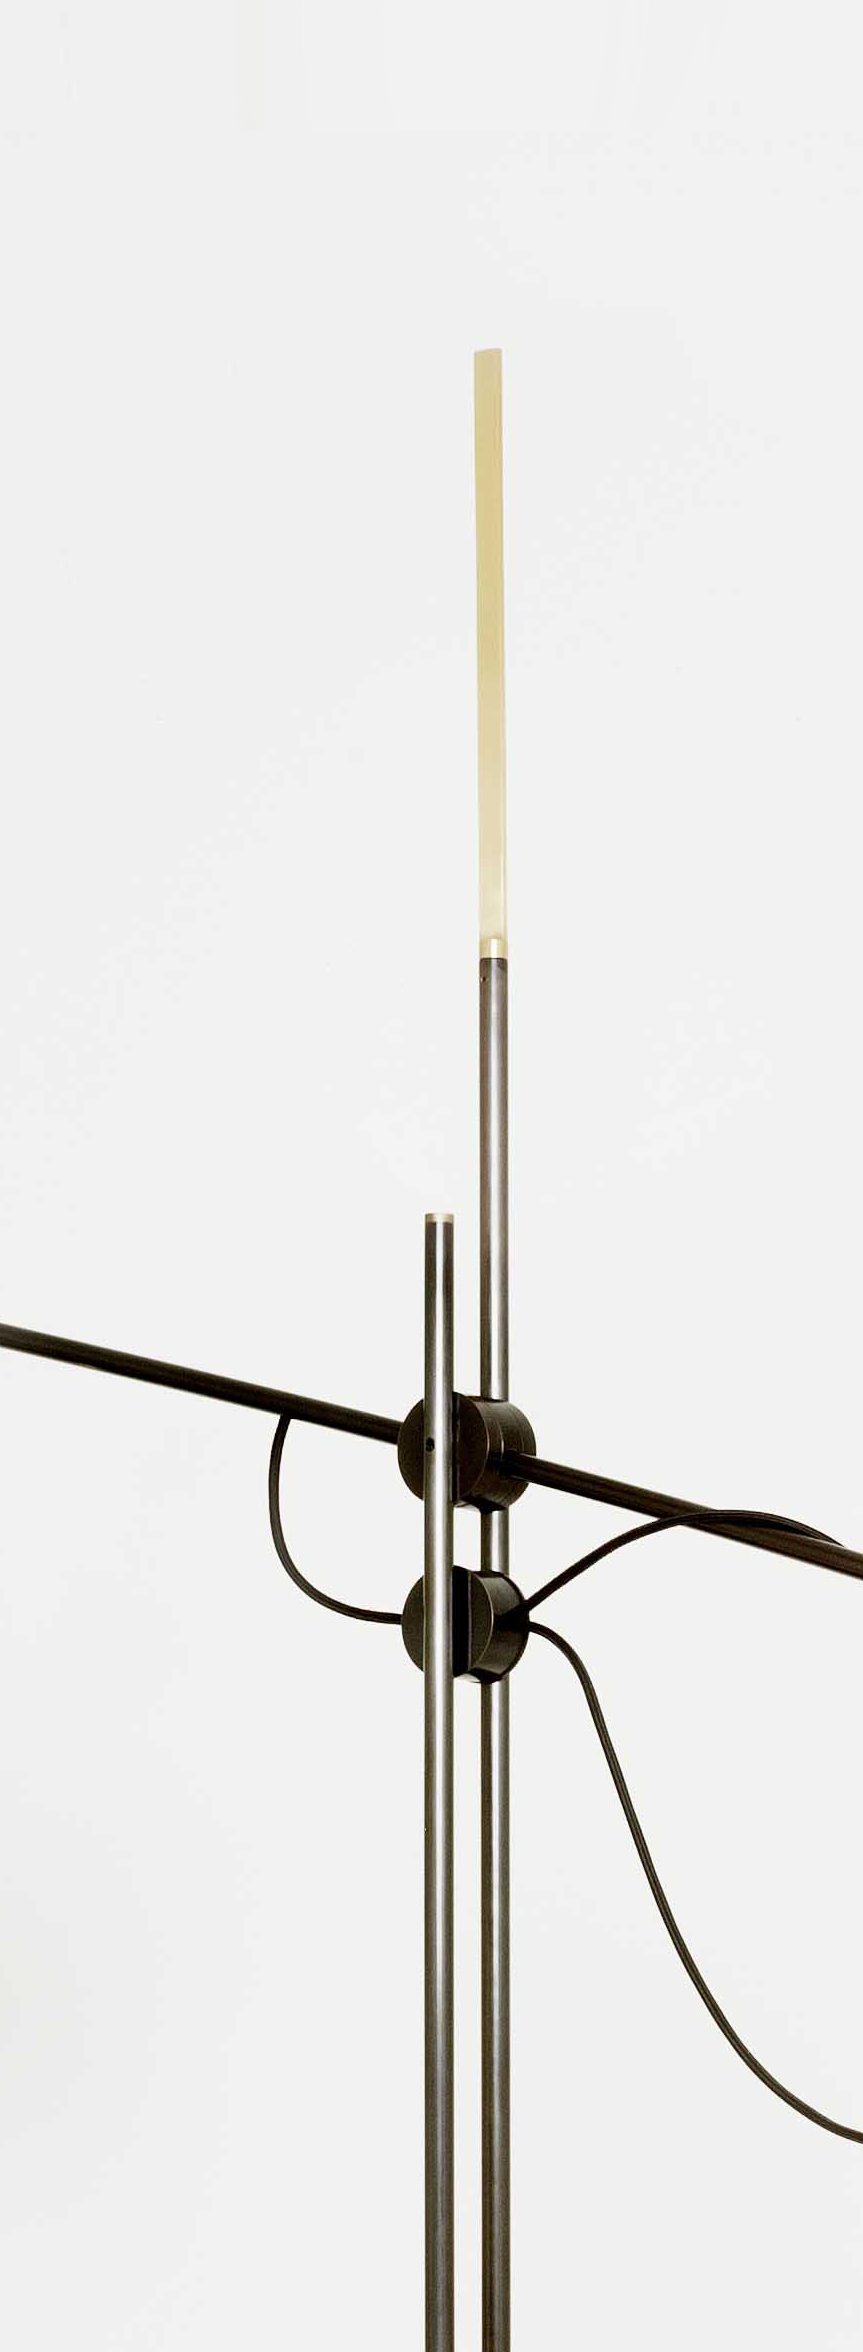 SB 26 Accoceberry Cecere Moon Lamp XL - Detail 4